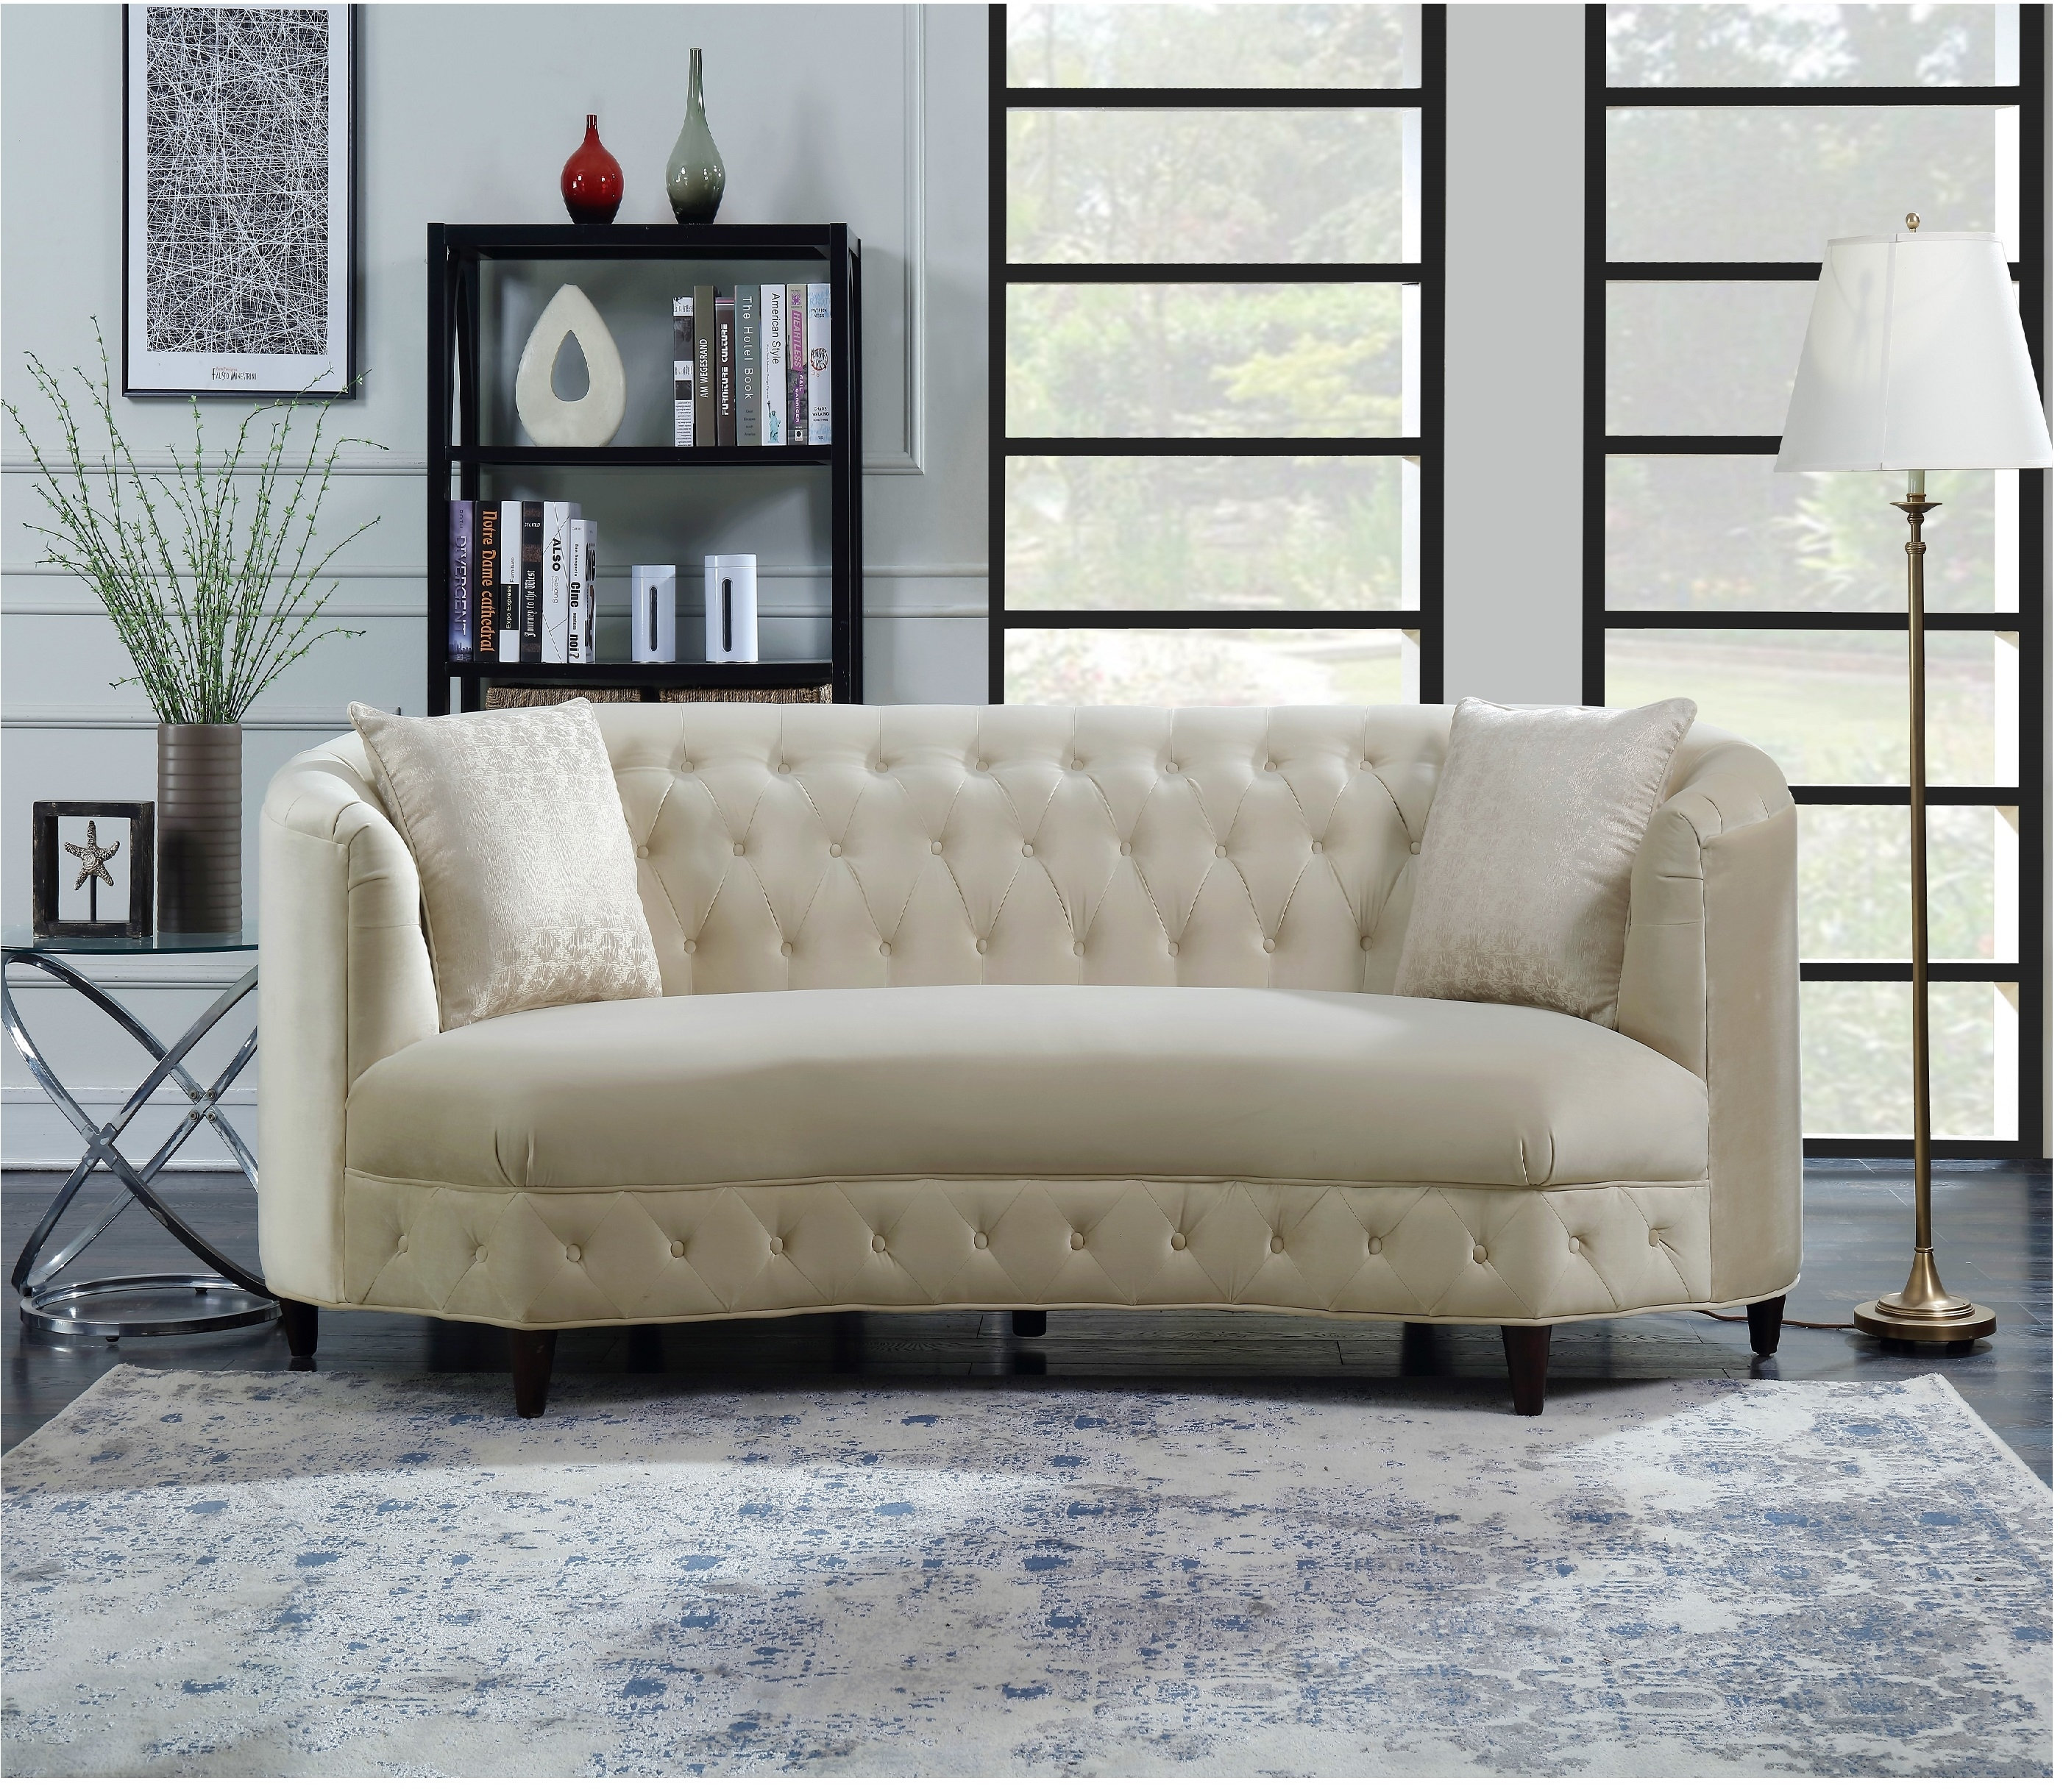 Sassa Kidney Shaped Club Sofa with 2 Accent Pillows - Champagne